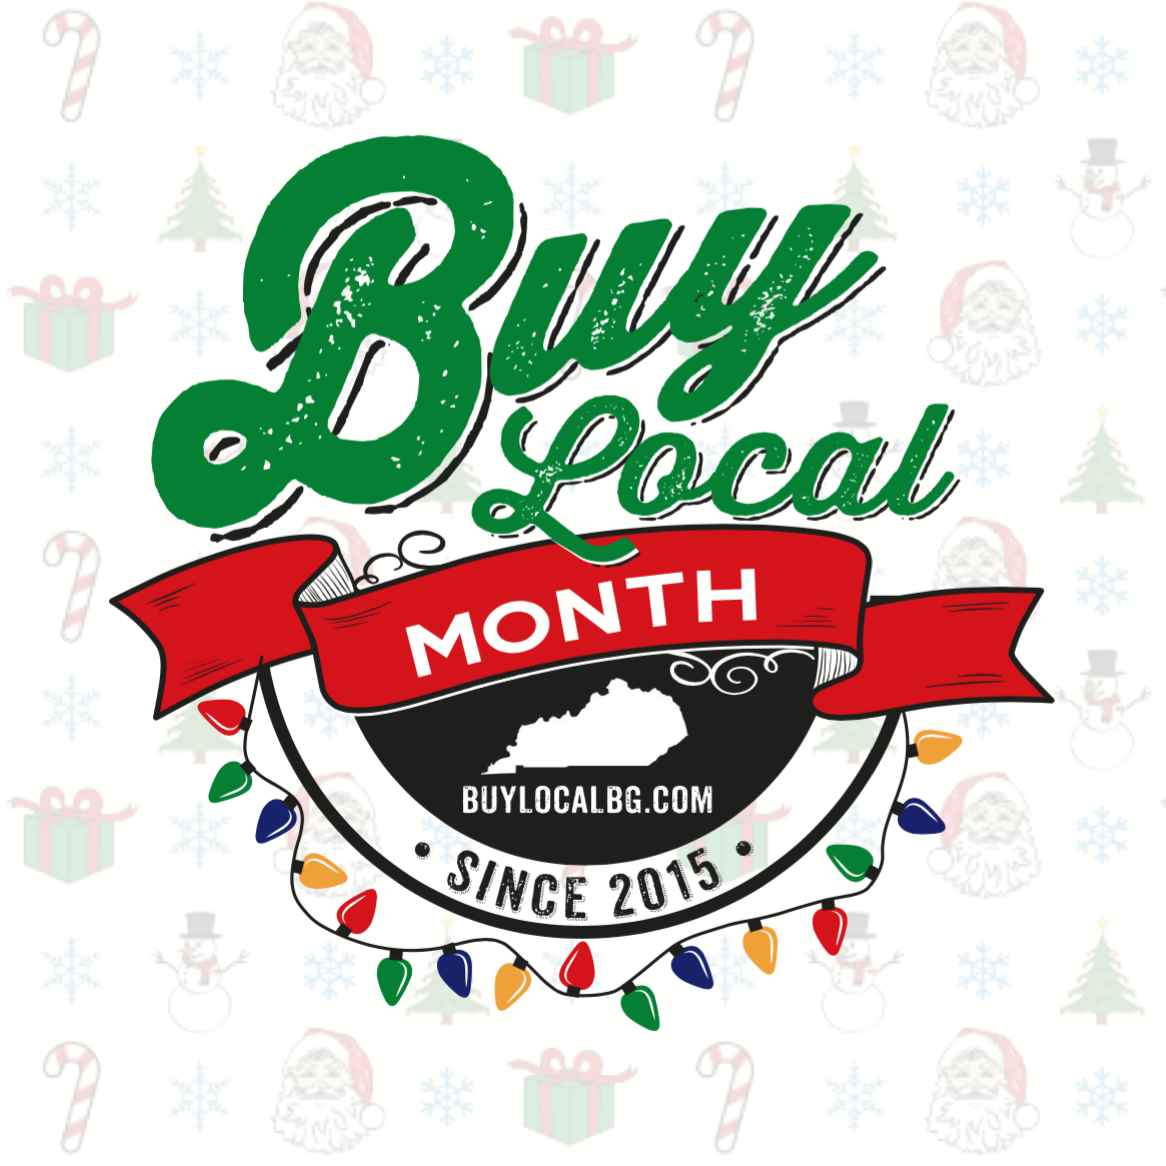 2020 Holly Jolly Christmas Expo Bowling Green Vendor List We Continue Buy Local Month 2018 Presented by BuyLocalBG.com! Here